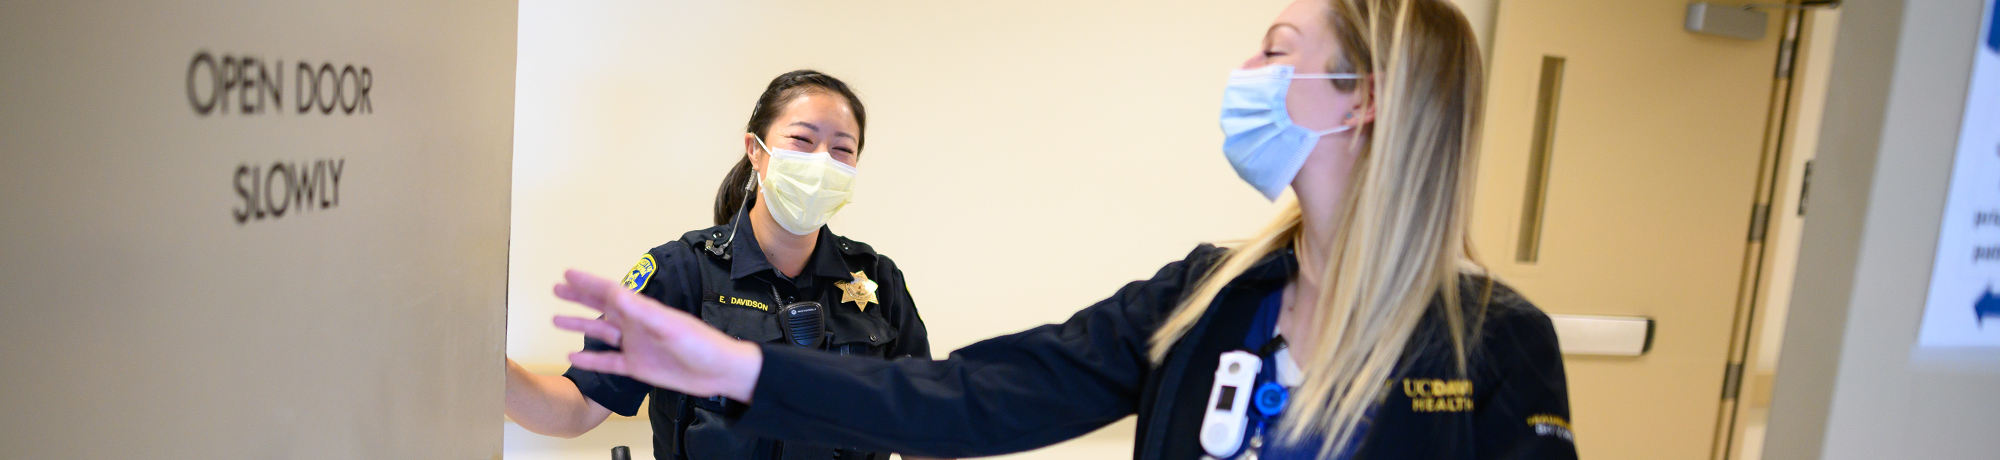 Female officer and nurse with face coverings walk through UC Davis Medical Center